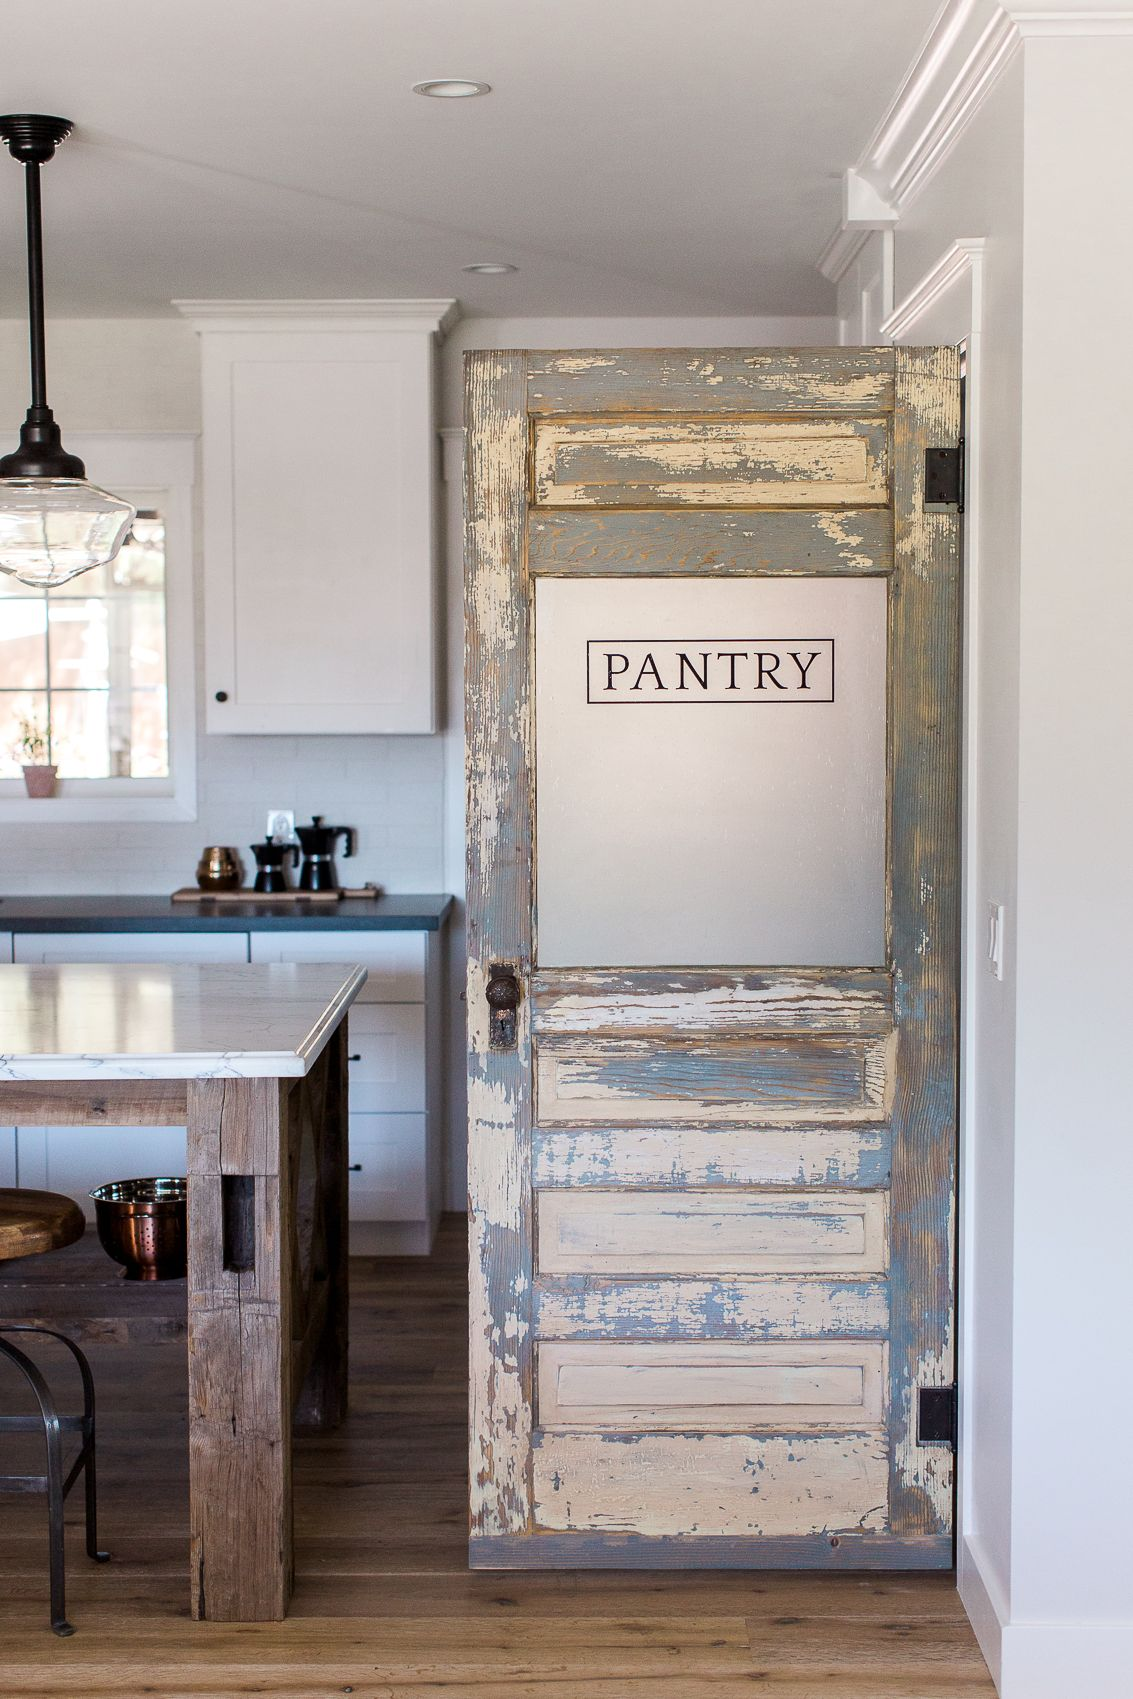 Charmant Custom Rafterhouse Pantry Door. This Door Was An Old Antique Door That We  Rebuilt And Re Purposed As A Pantry Door.